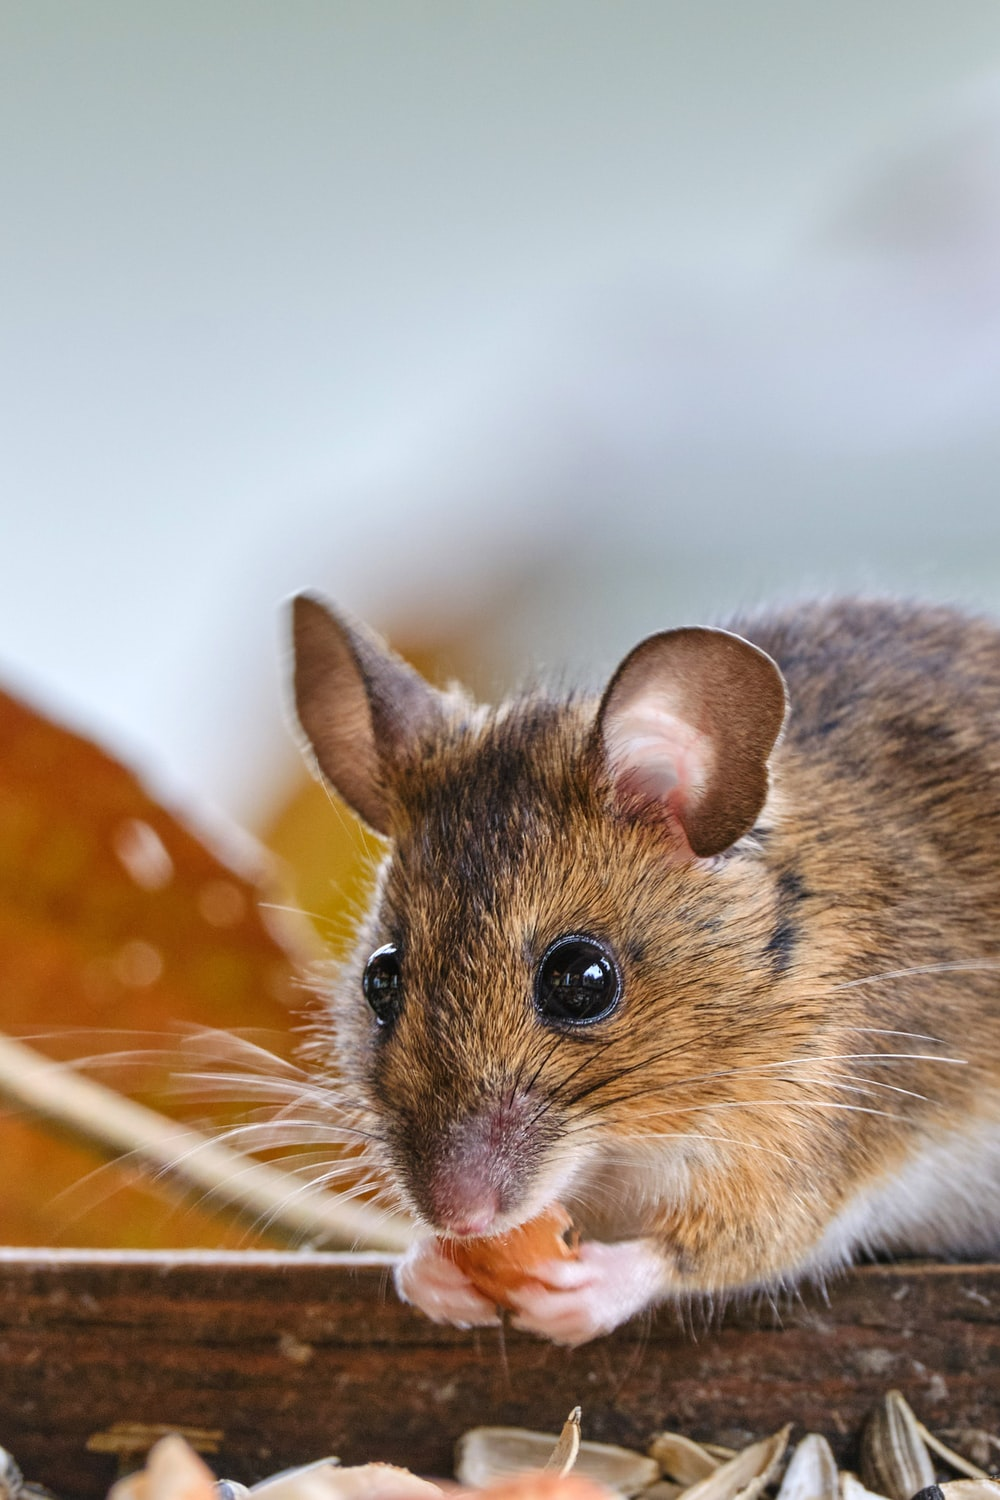 brown and white rodent on orange and white polka dot textile